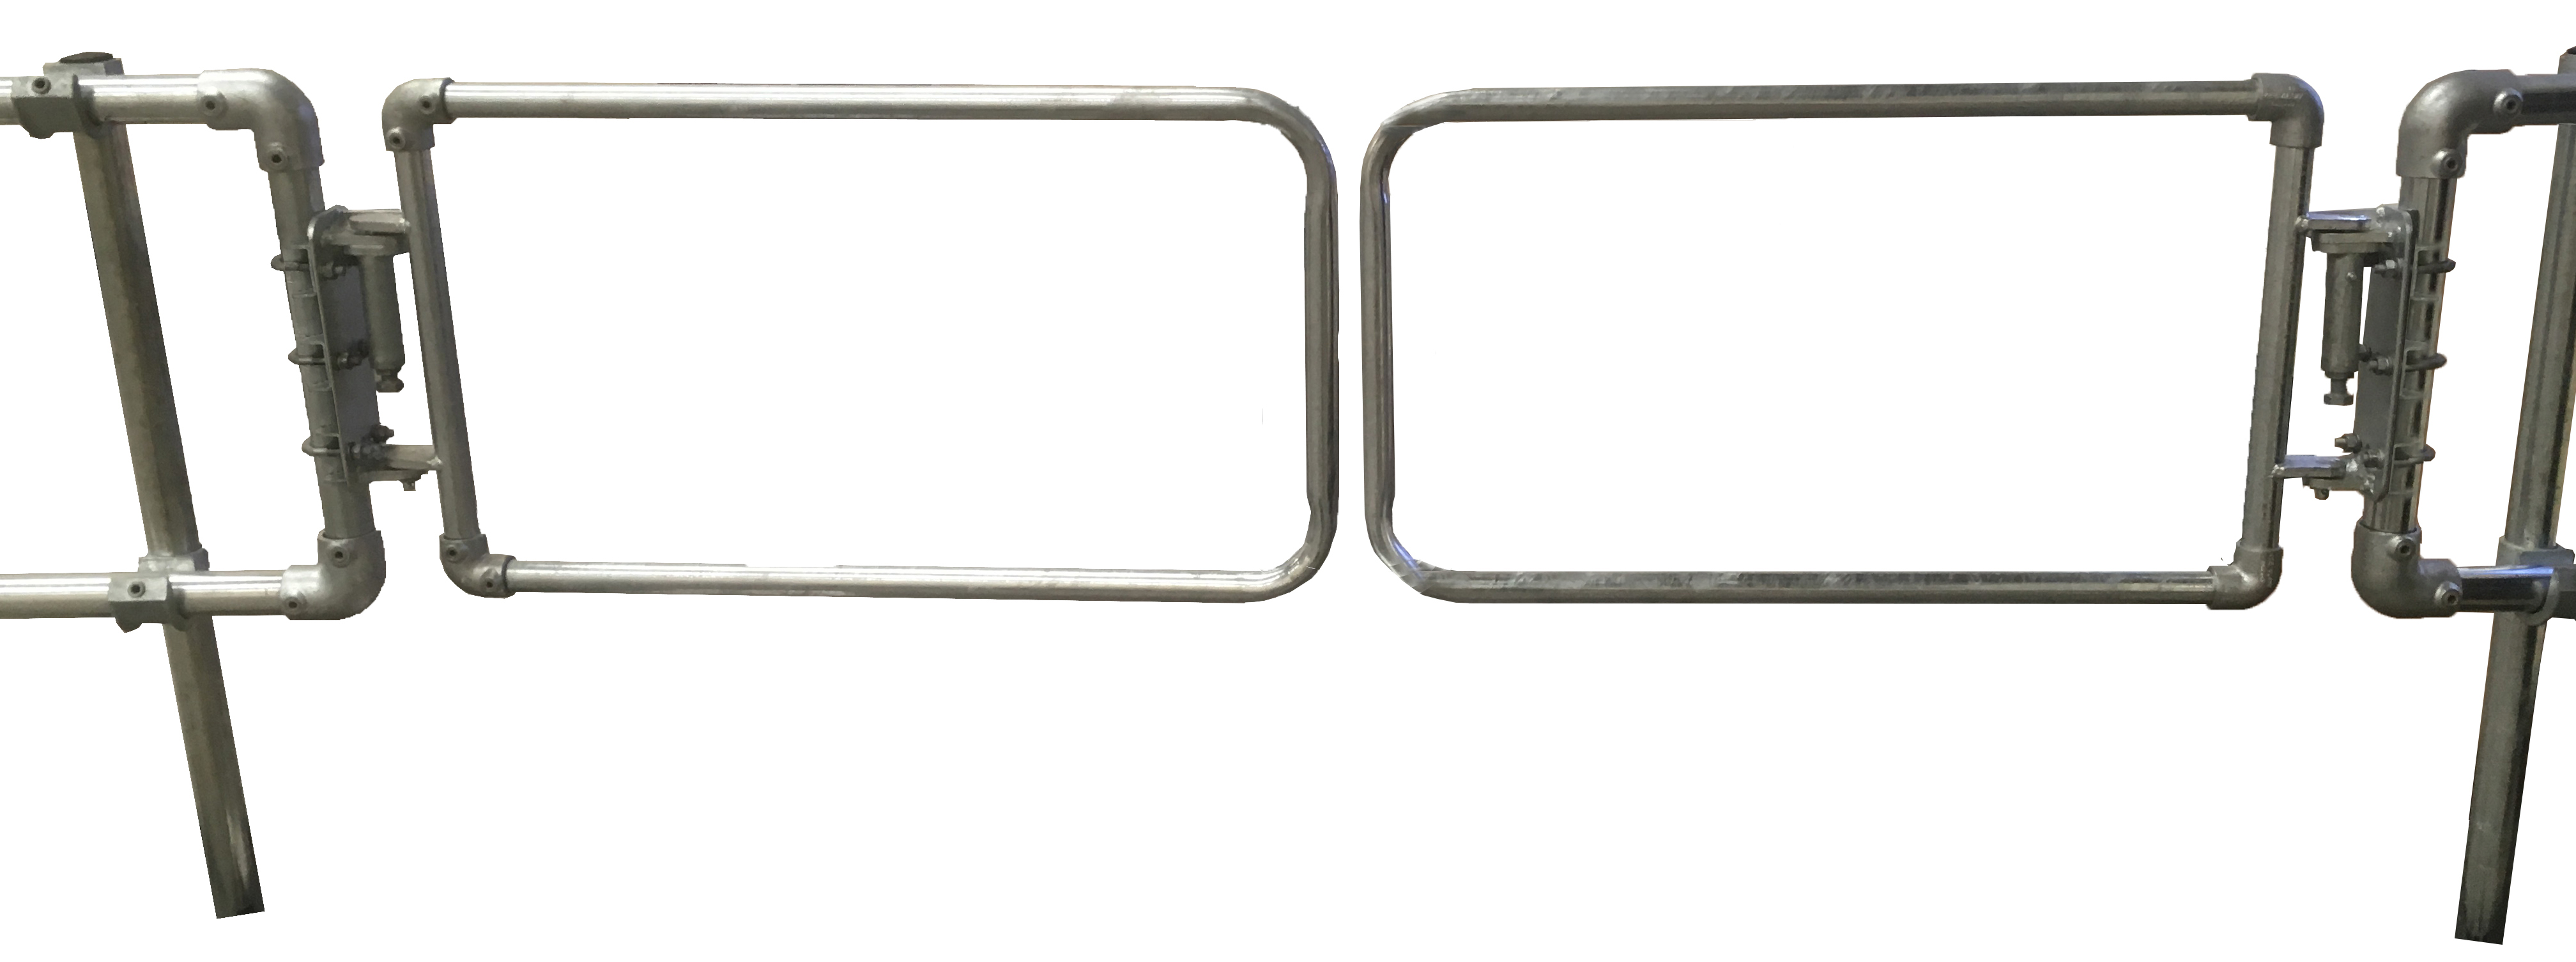 Galvanised Double Width Safety Gate-1515